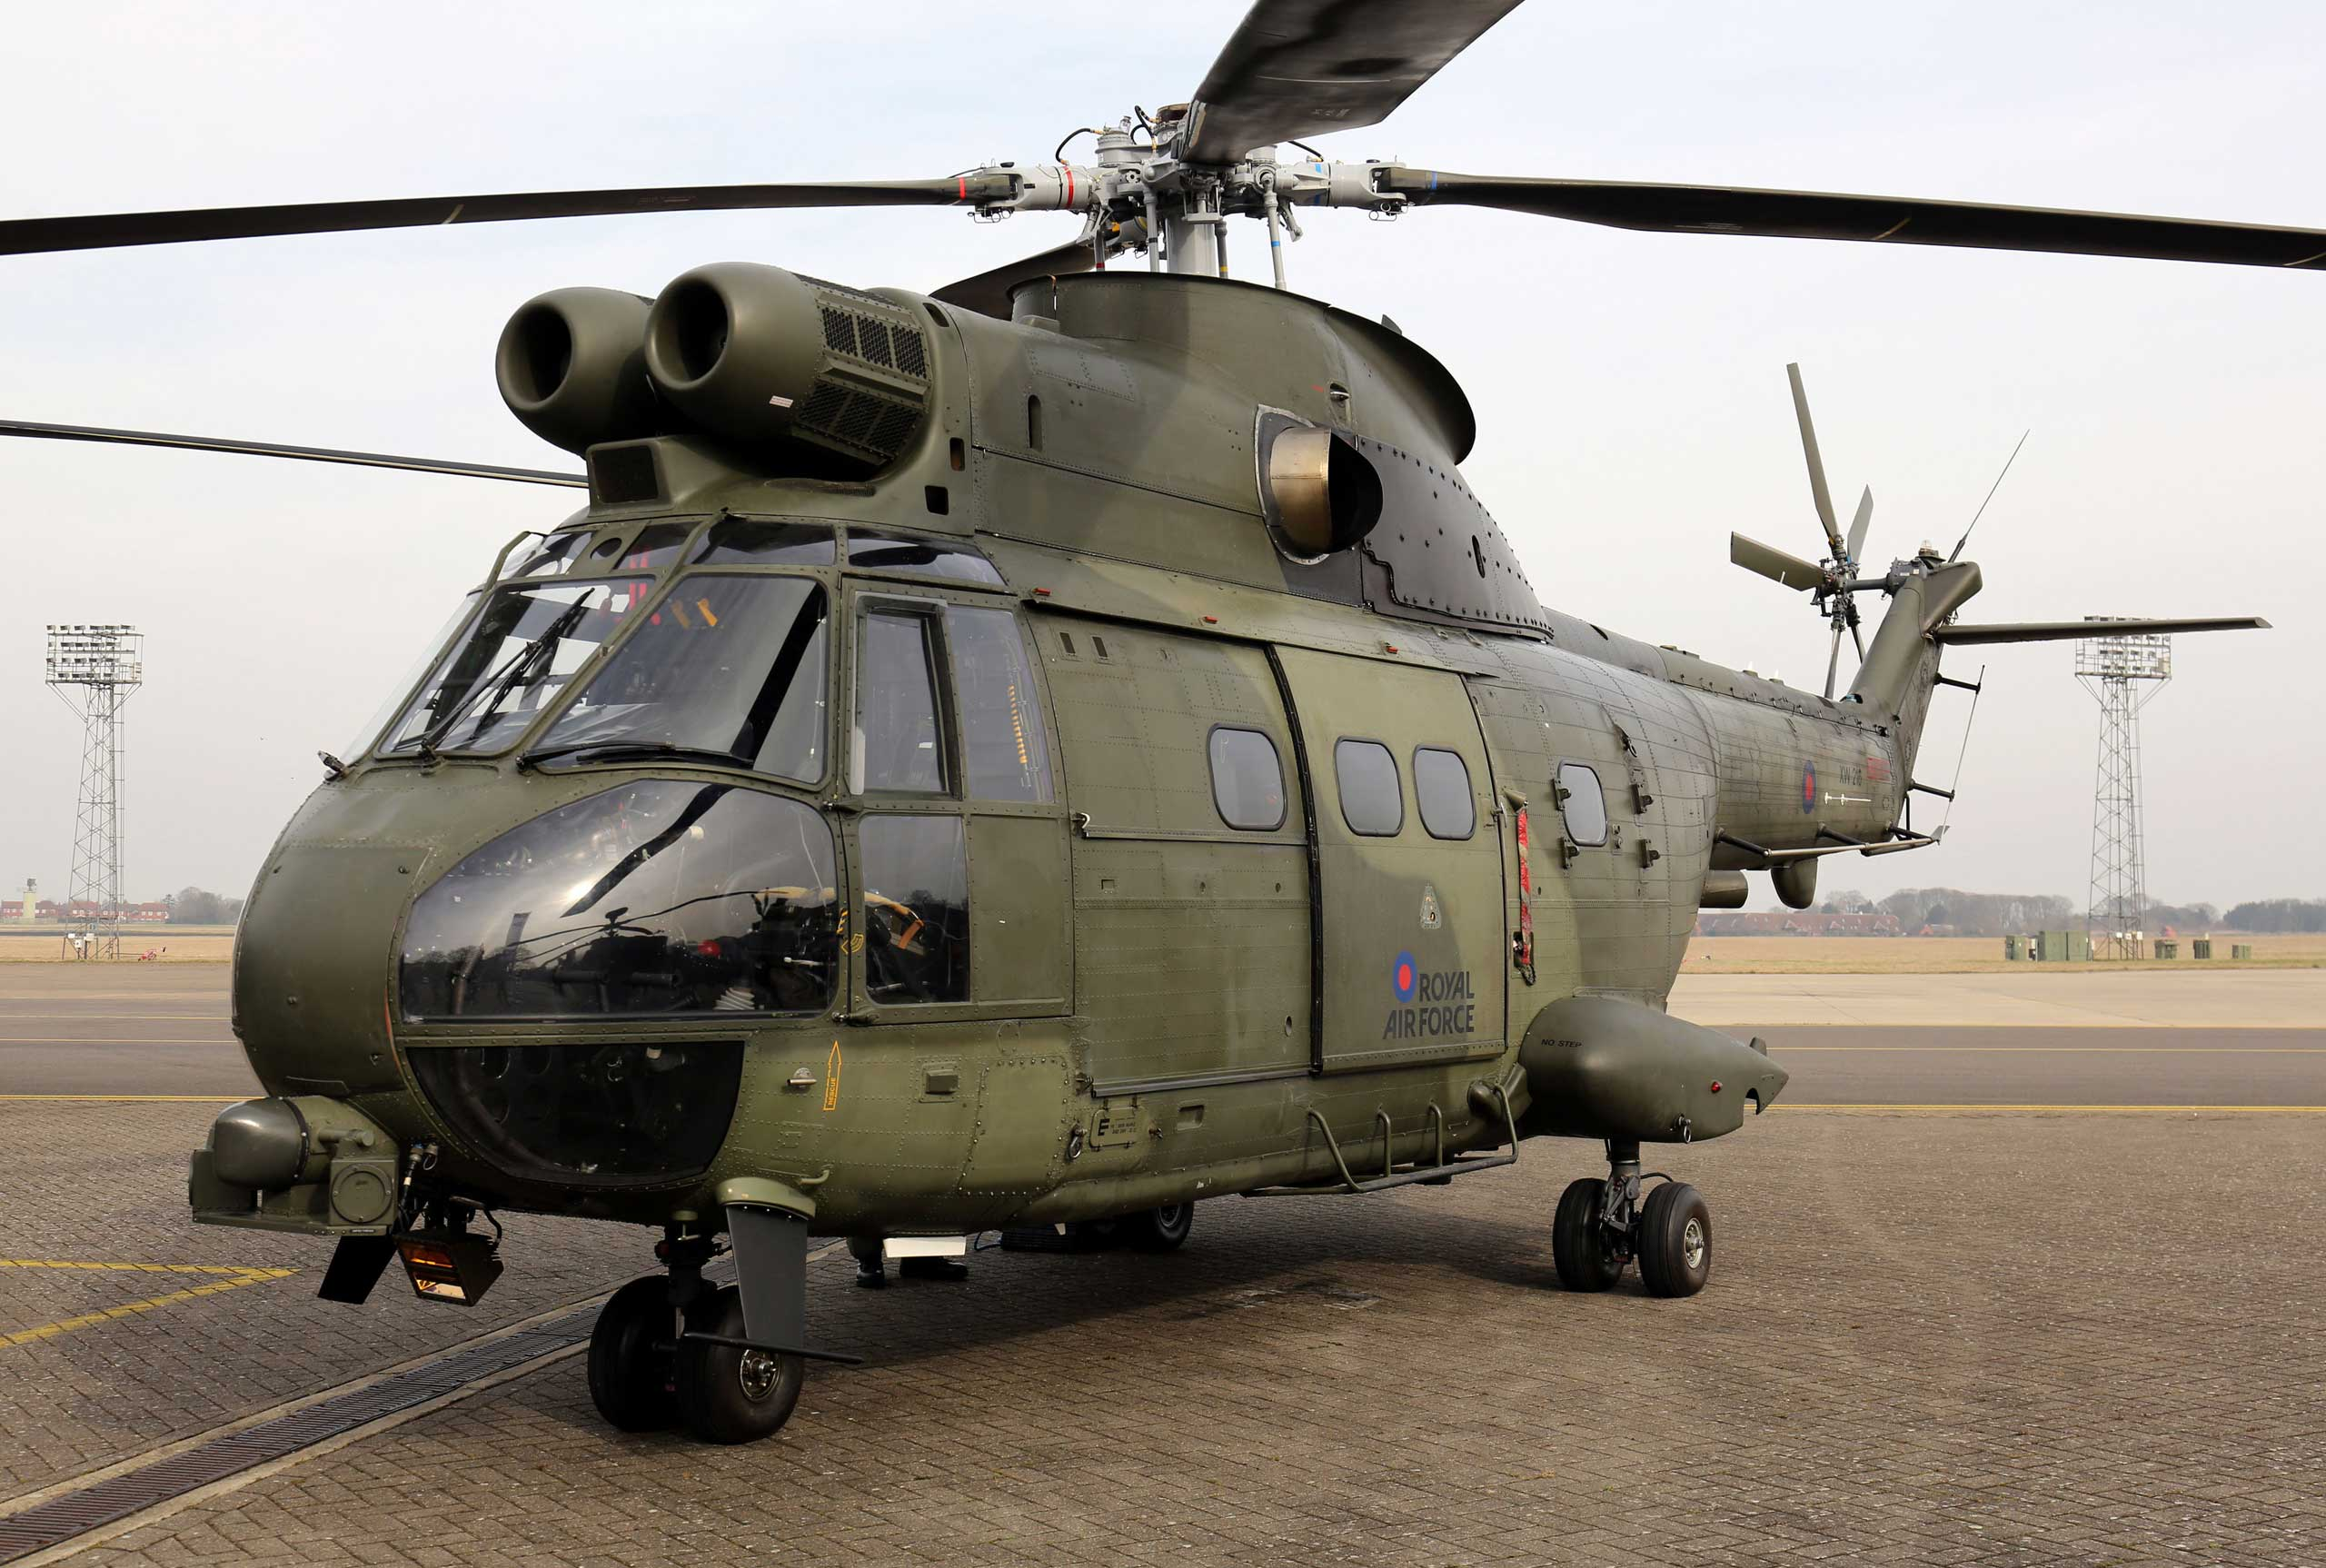 A RAF Puma helicopter, similar to the UK Puma Mk 2 helicopter which crashed in Afghanistan, killing two service personnel from the RAF, Oct. 11, 2015.